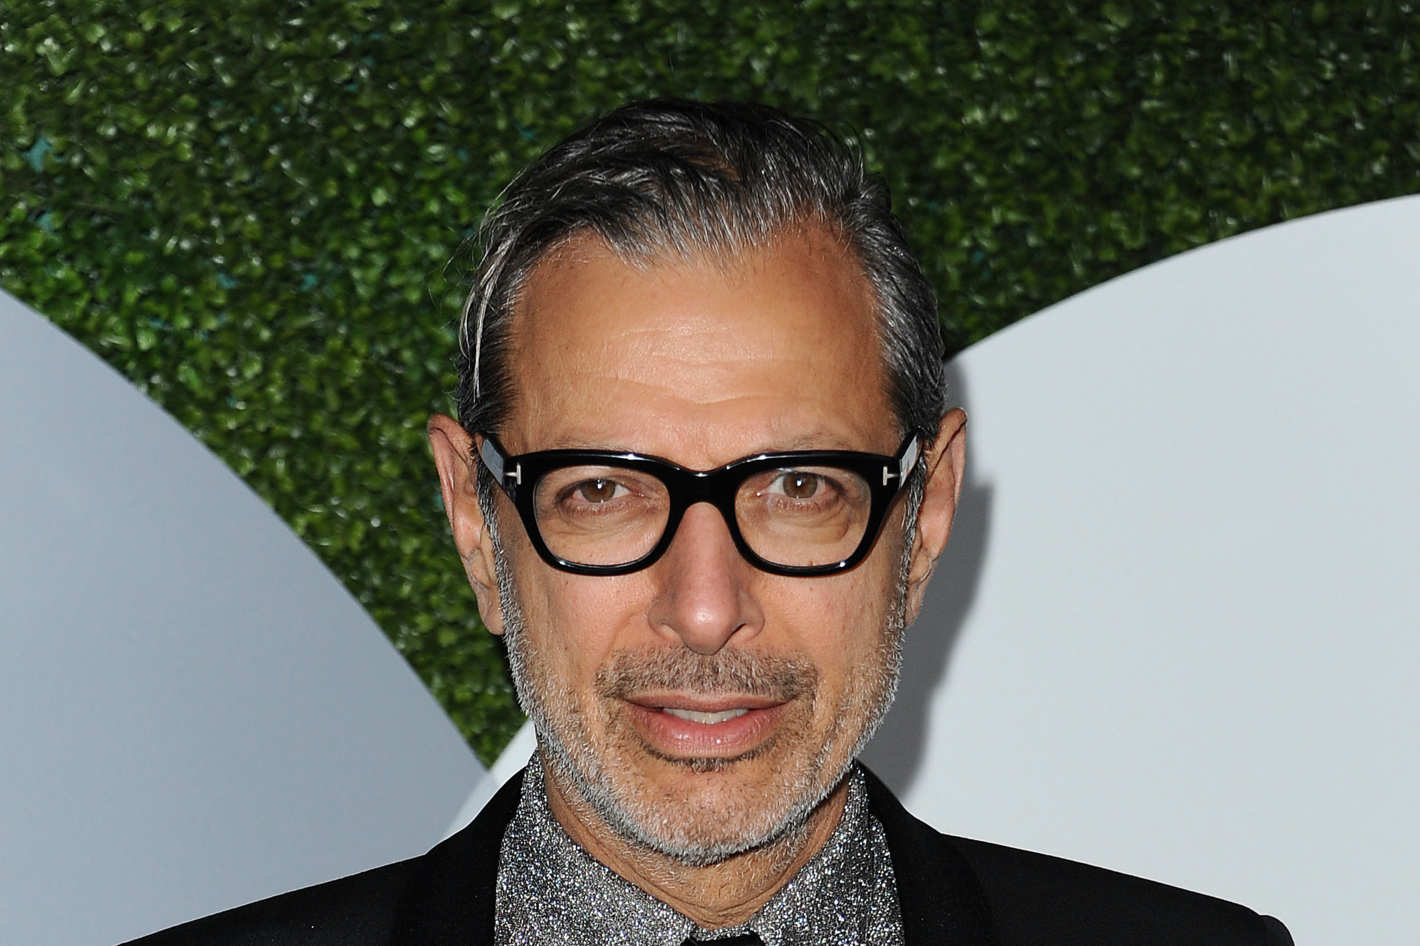 Jeff Goldblum to Reunite With Dinos in Jurassic World Sequel